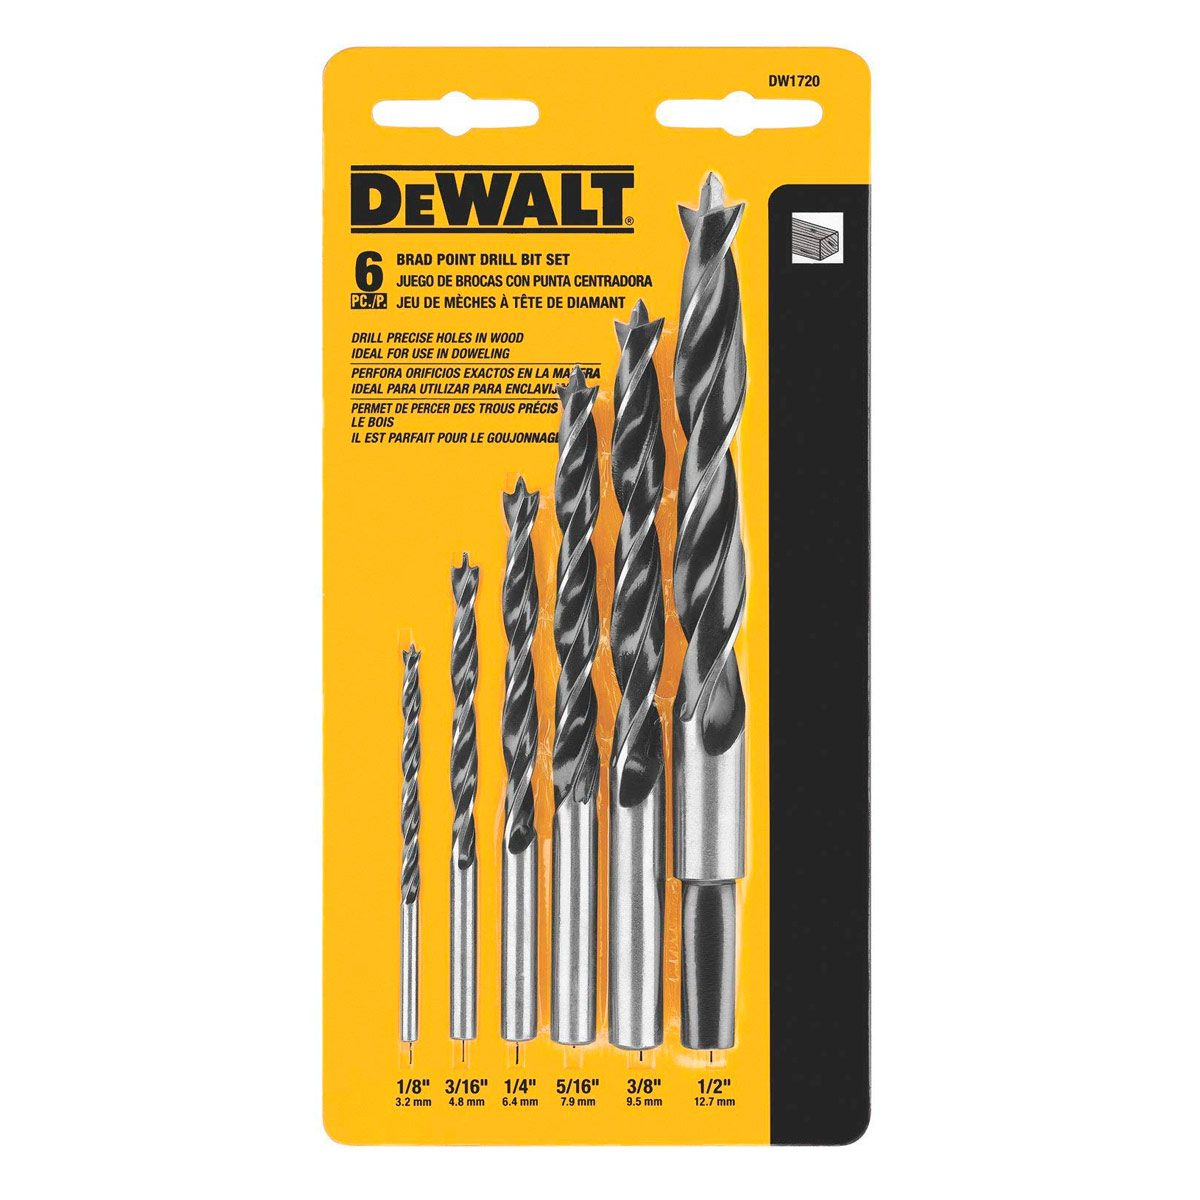 5 drill bit kits we think every diyer should have